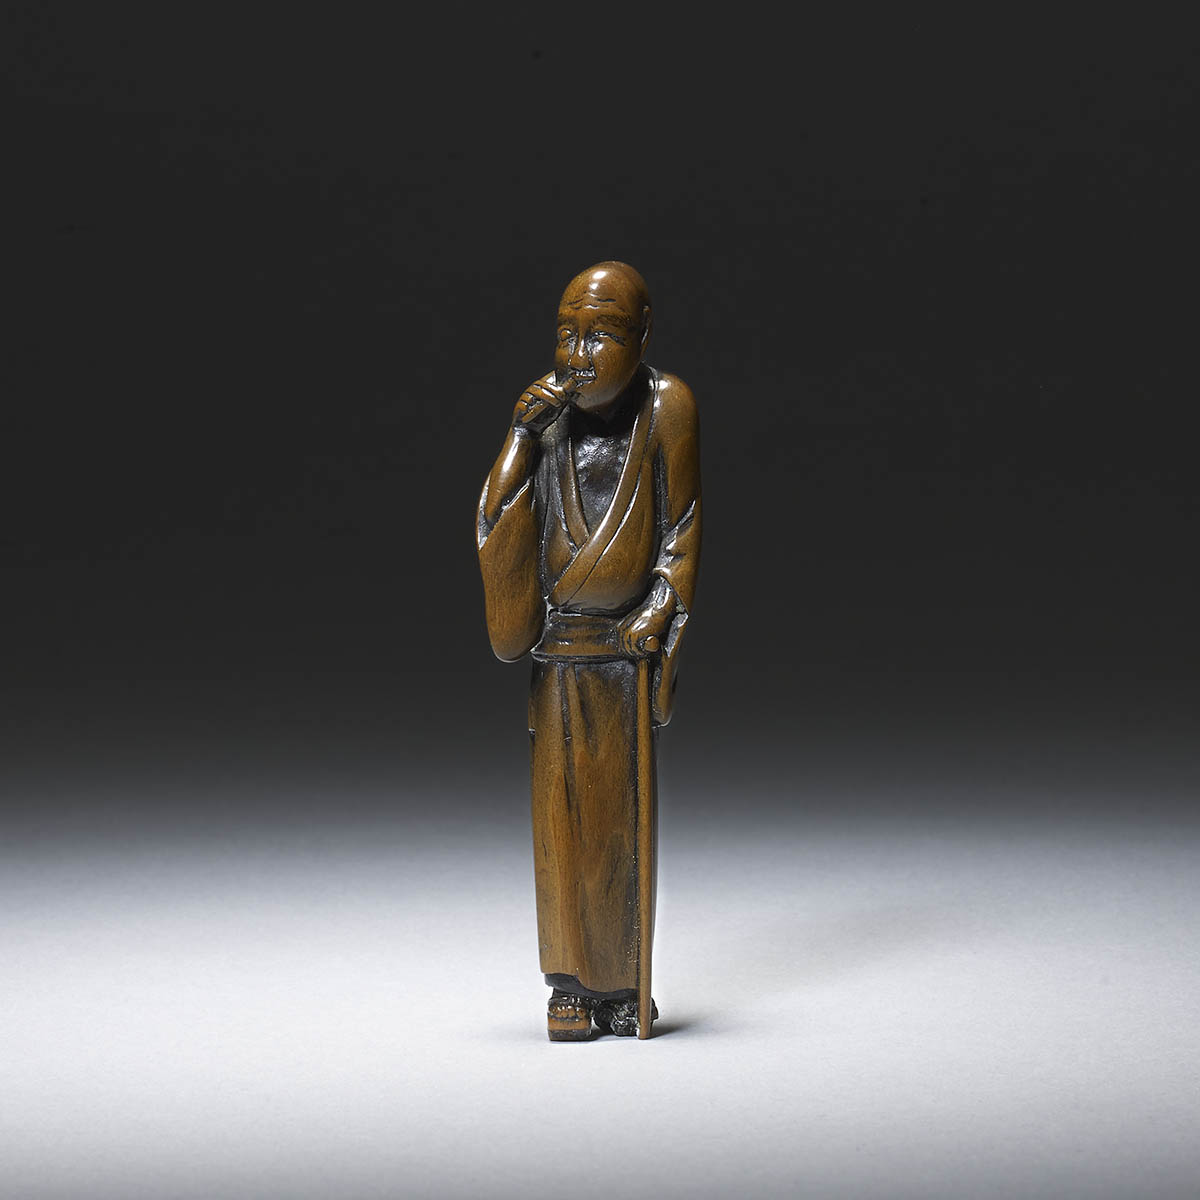 Boxwood netsuke of a thin blind man by Hokyudo Itsumin (Active 1830-70)